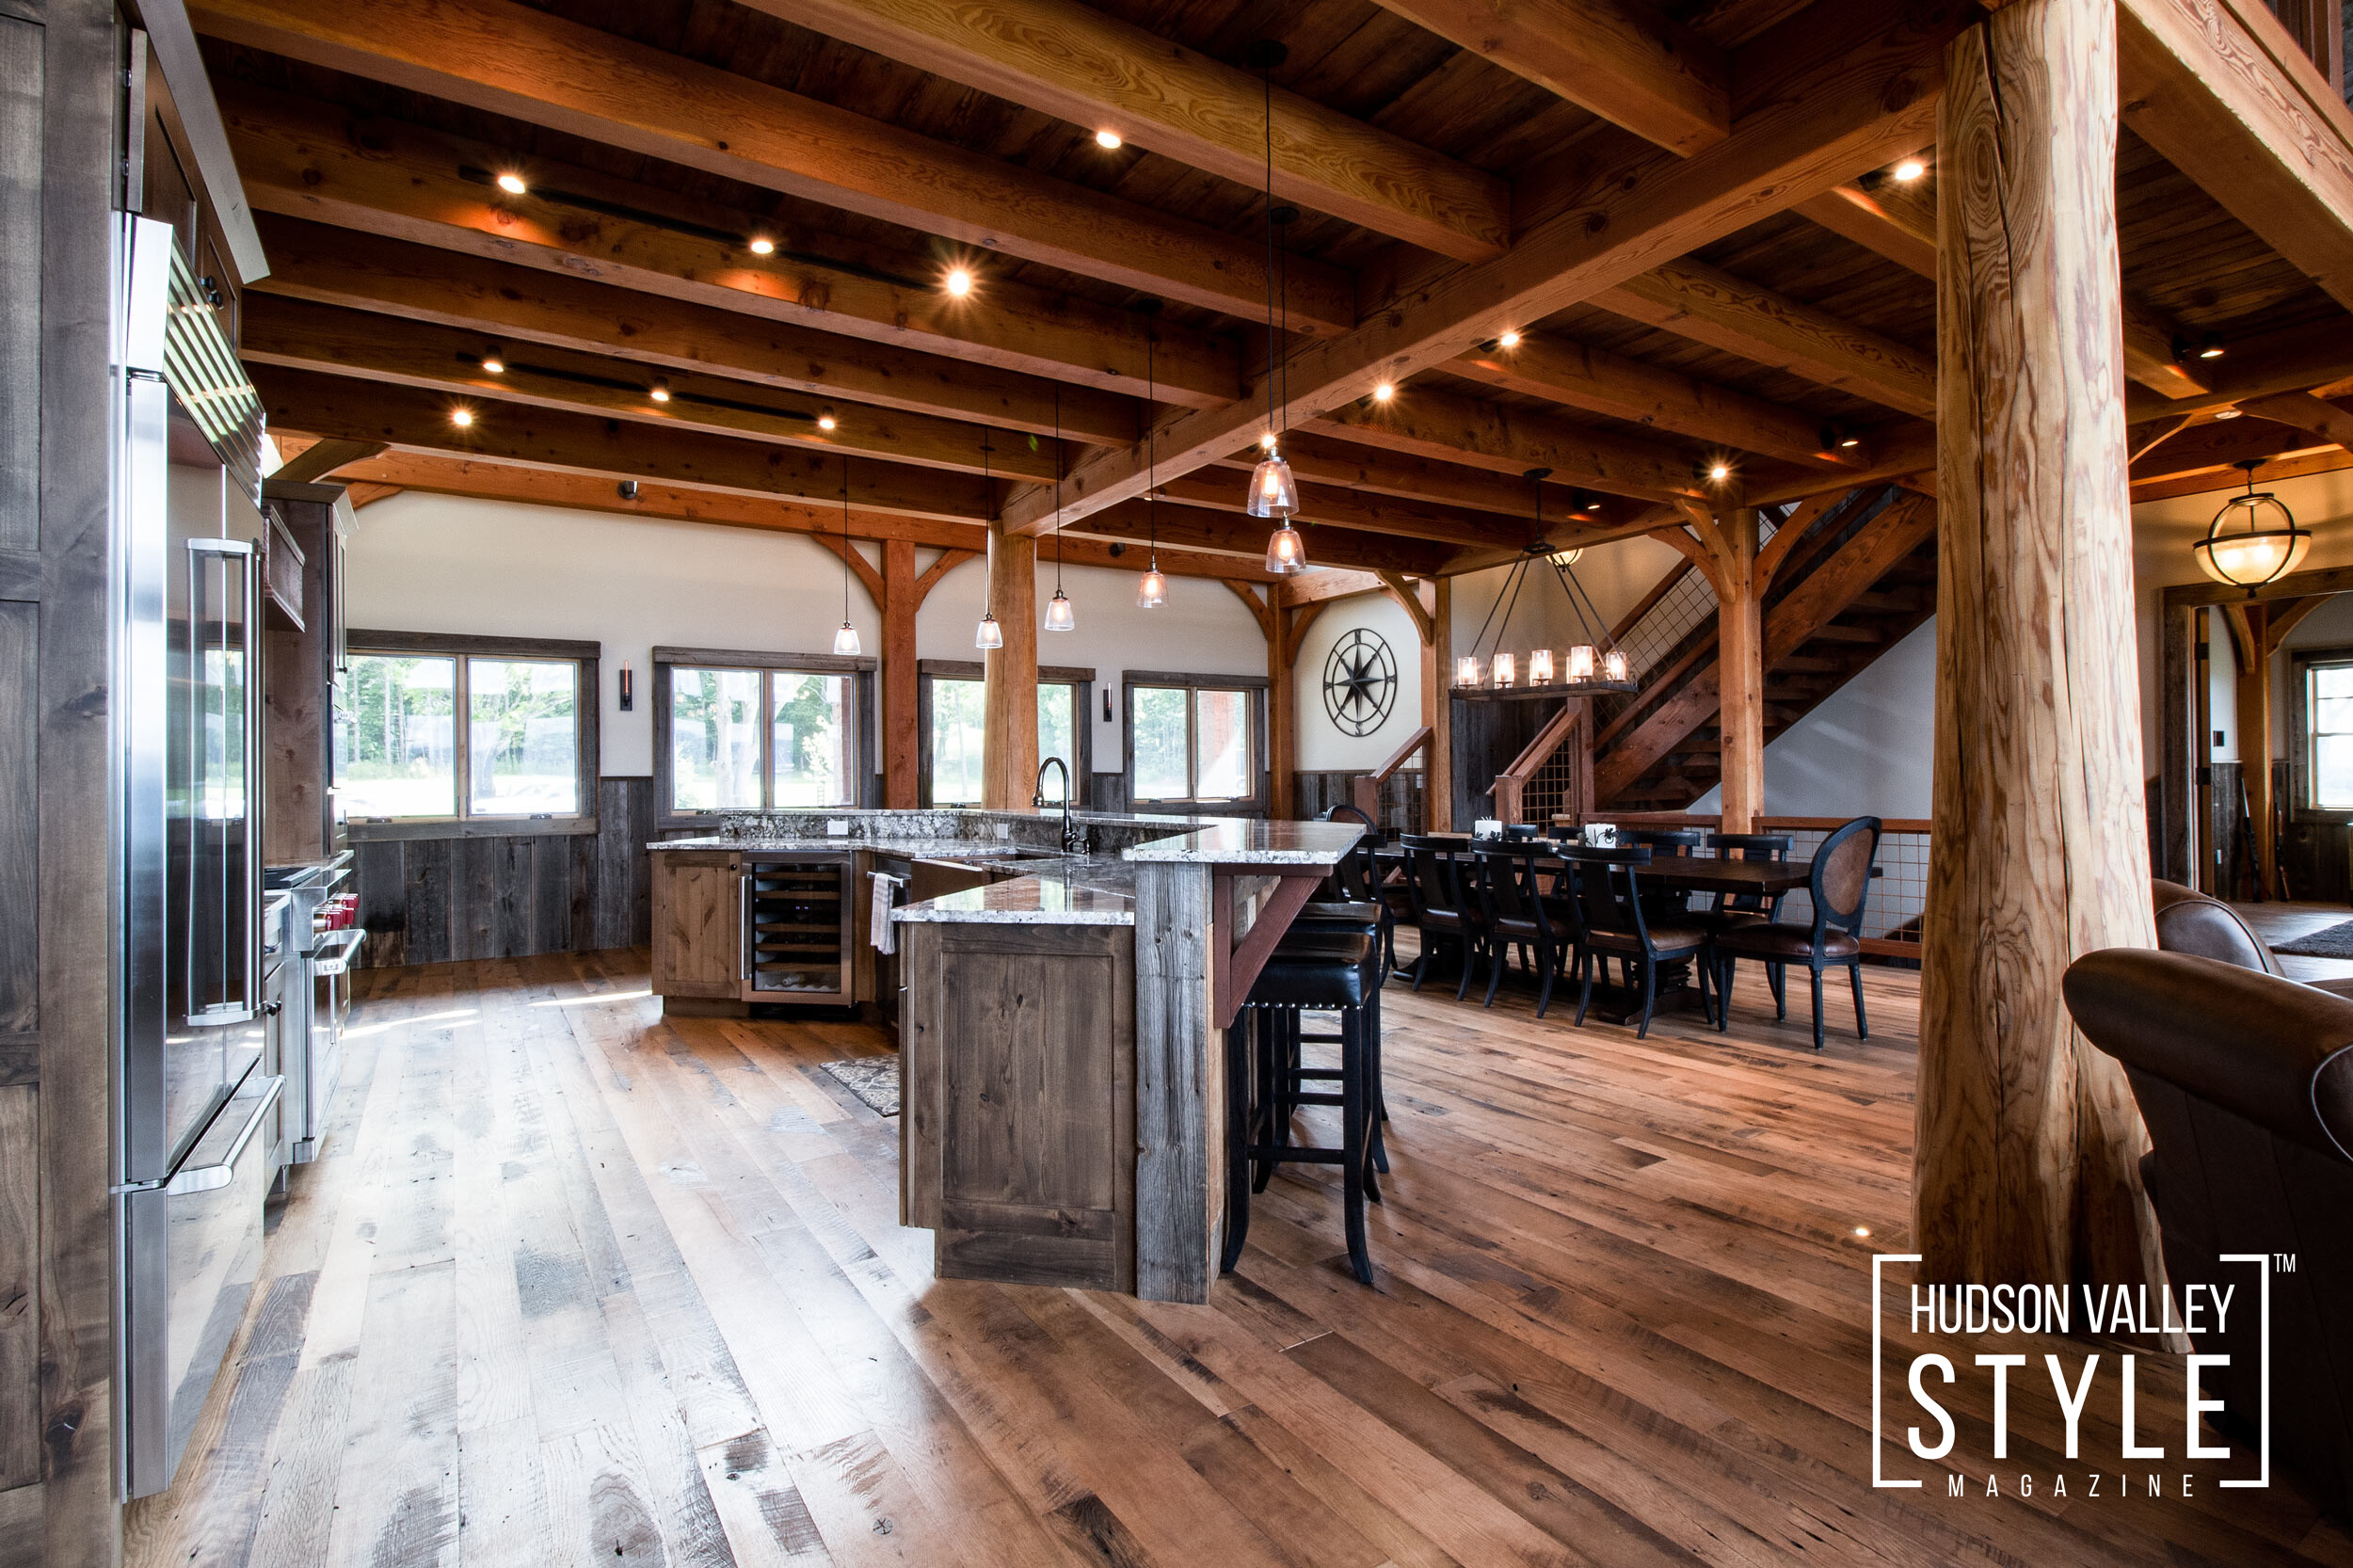 Choosing Decor for Your Hudson Valley Lodge or Cabin With a Rustic Theme by Designer Maxwell L. Alexander (Editor-in-Chief, Hudson Valley Style Magazine)